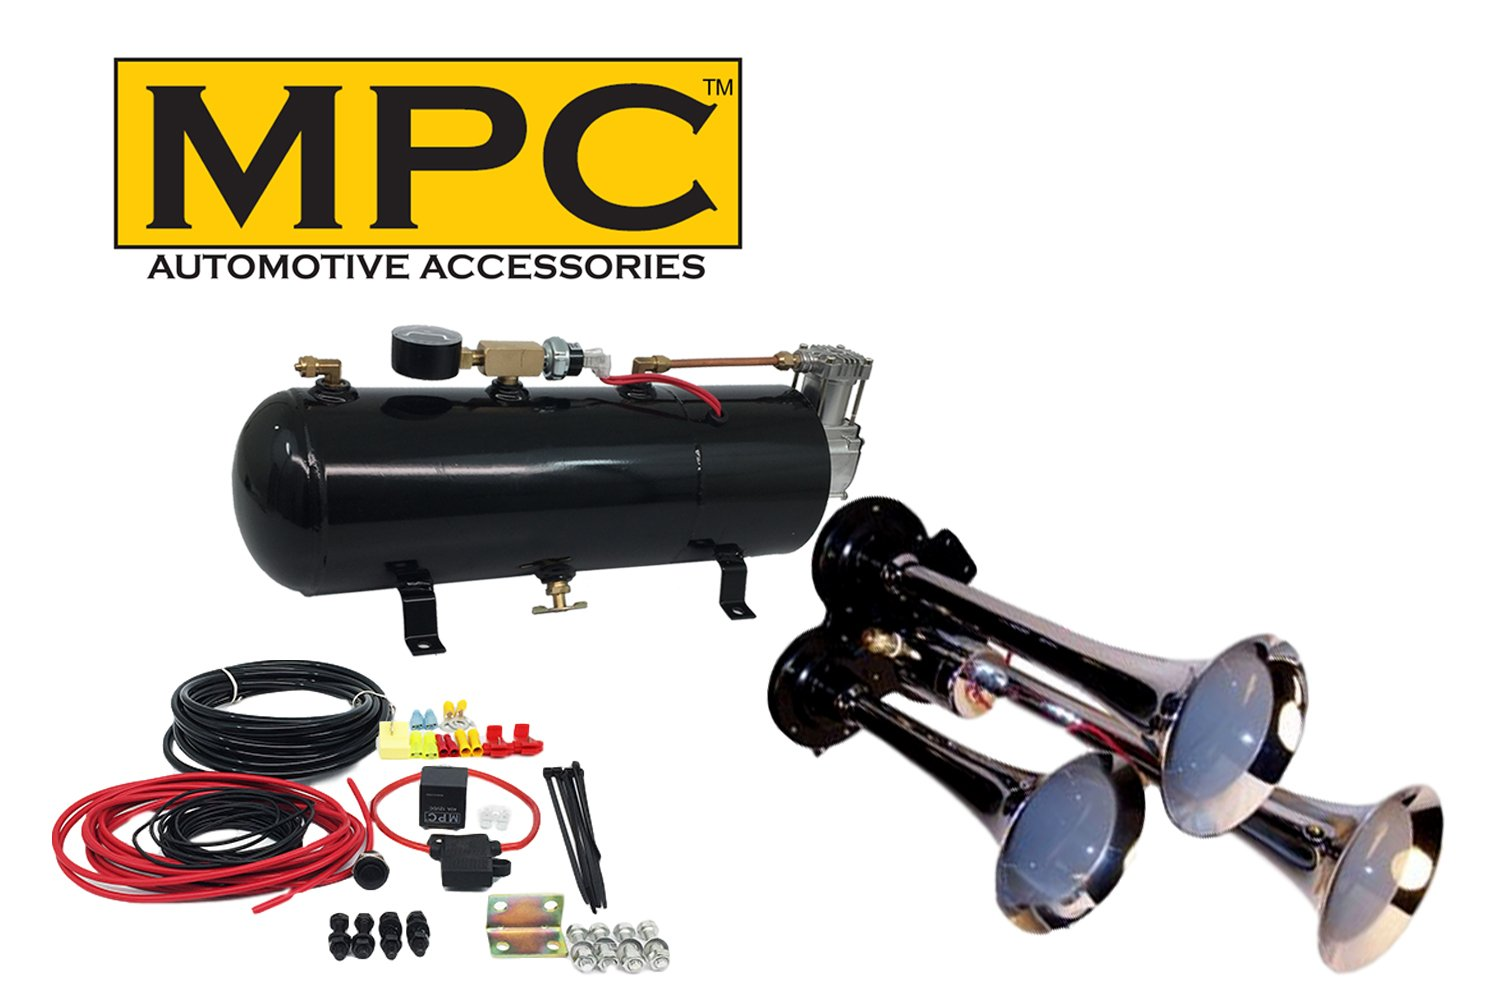 3 trumpet train air horn kit - fits almost any vehicle: truck, car,